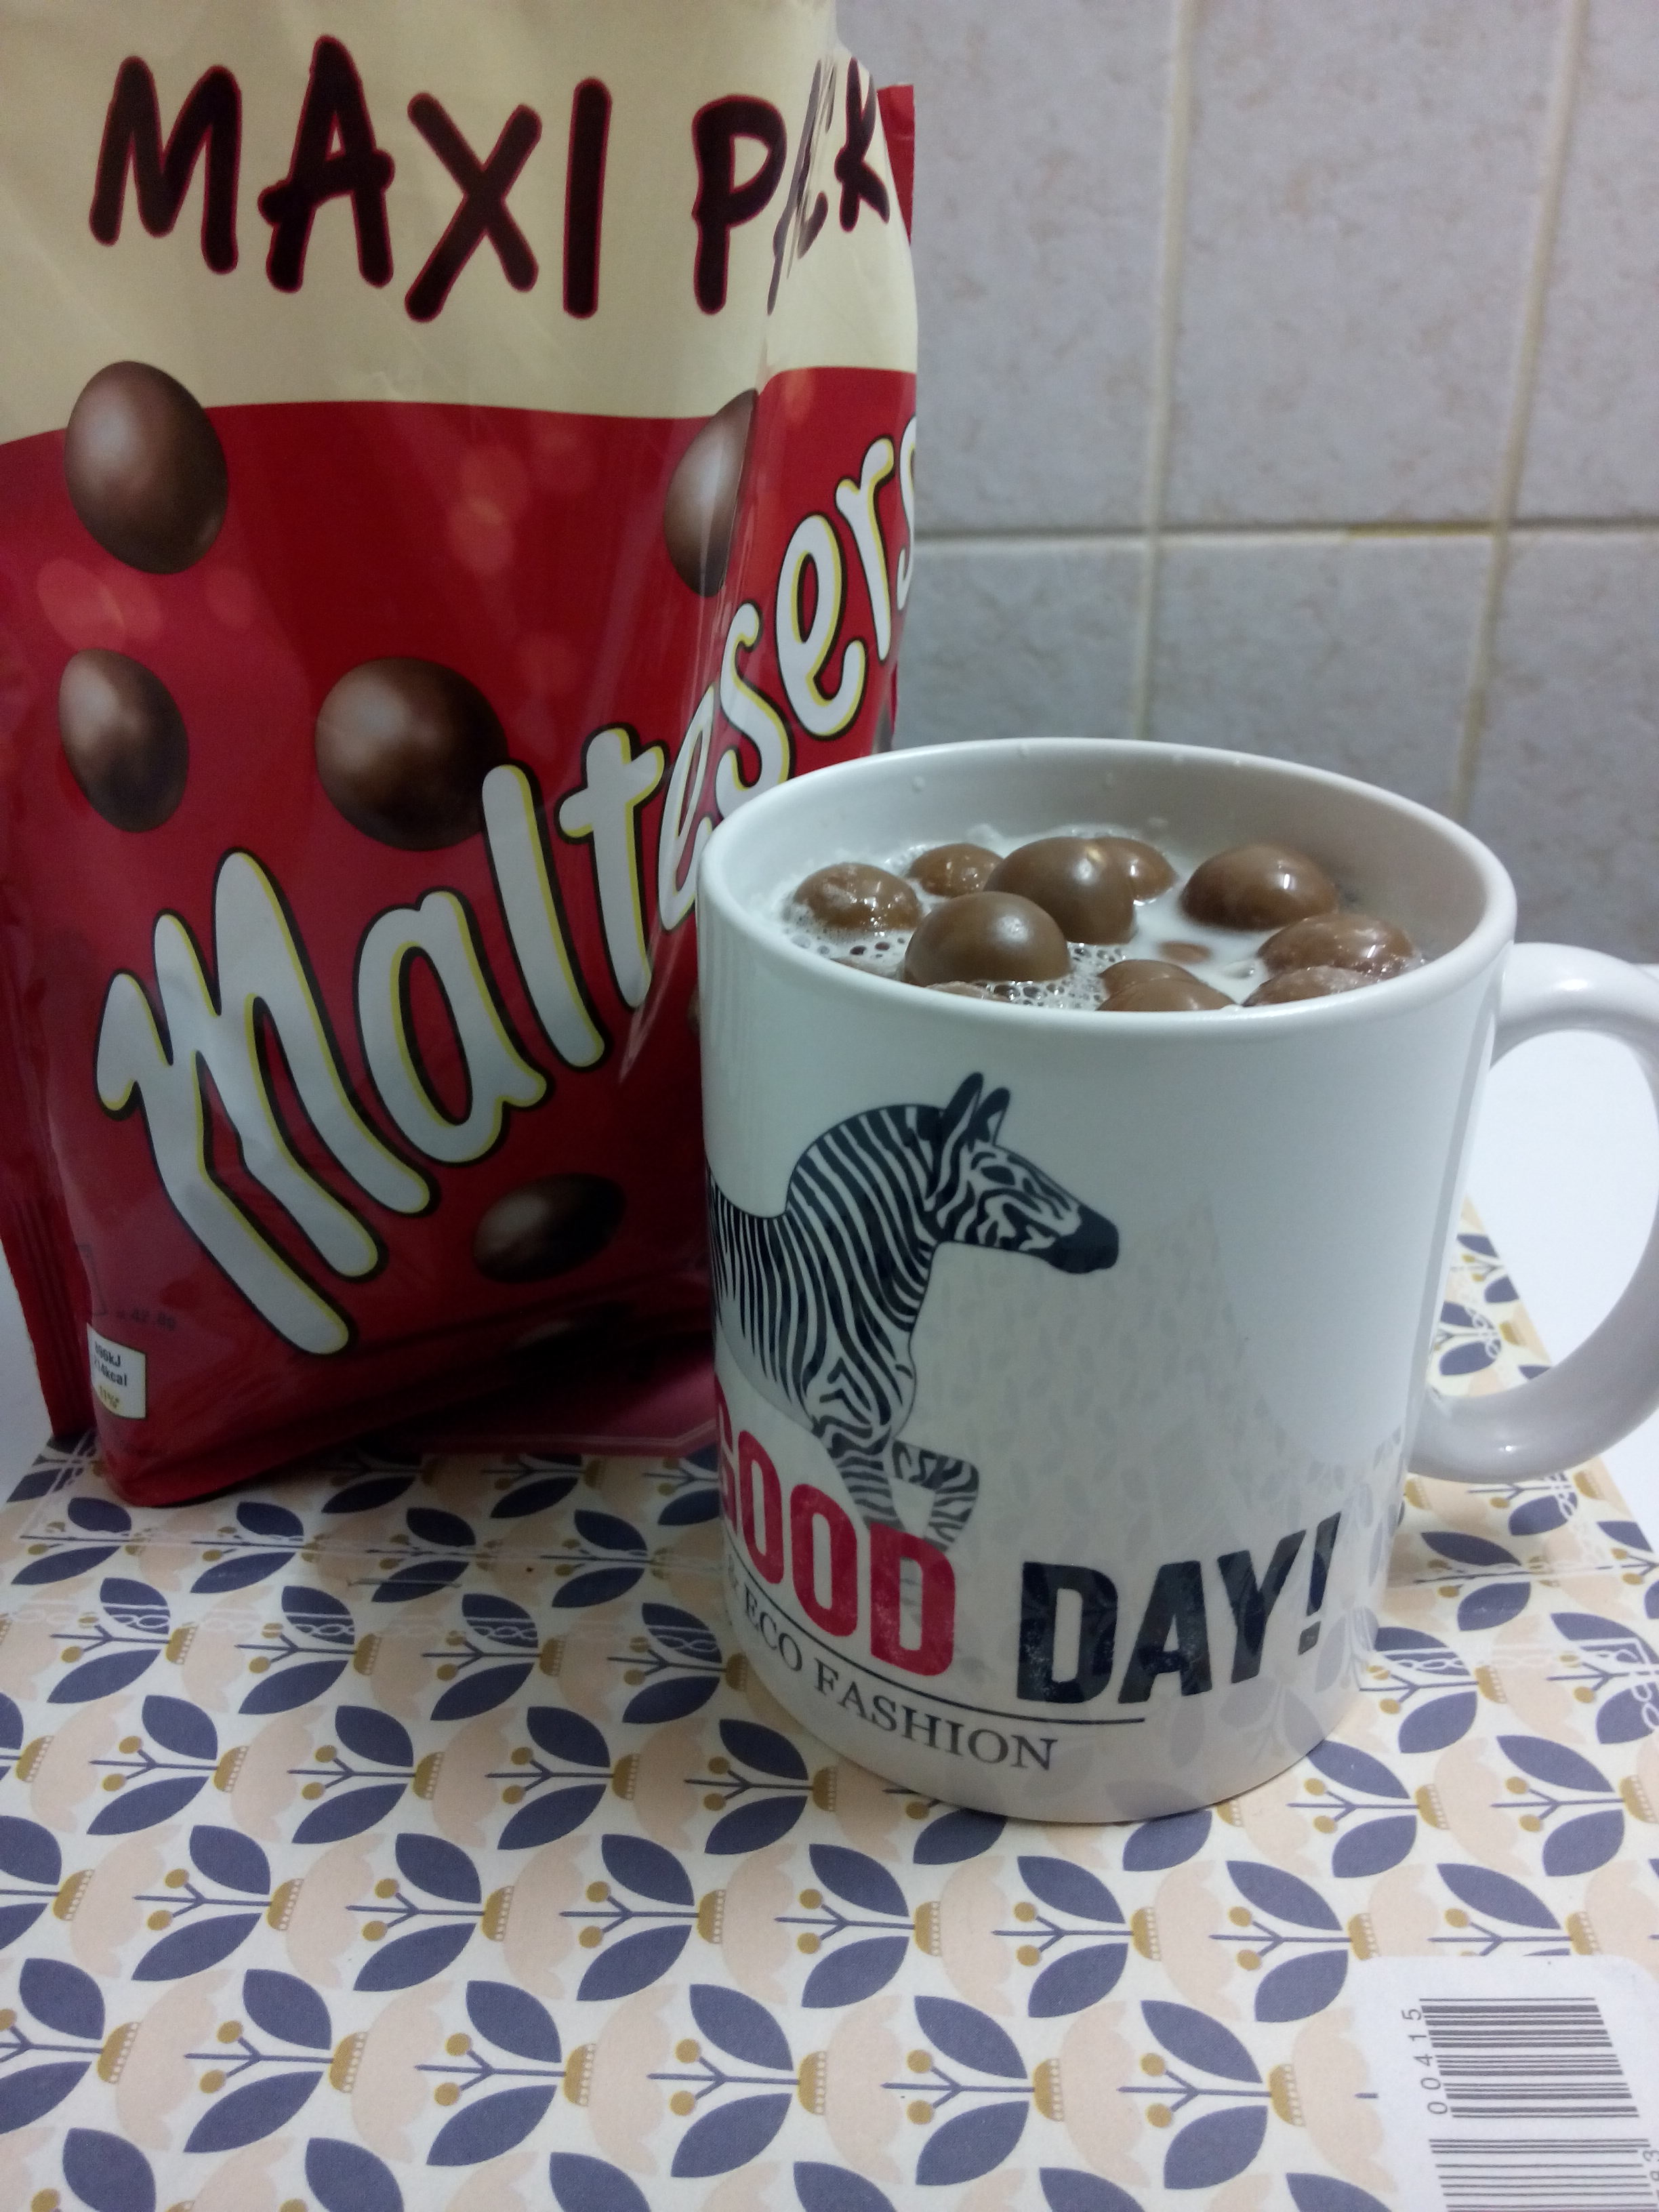 mok today is a good day maltesers http://gerhildemaakt.wordpress.com